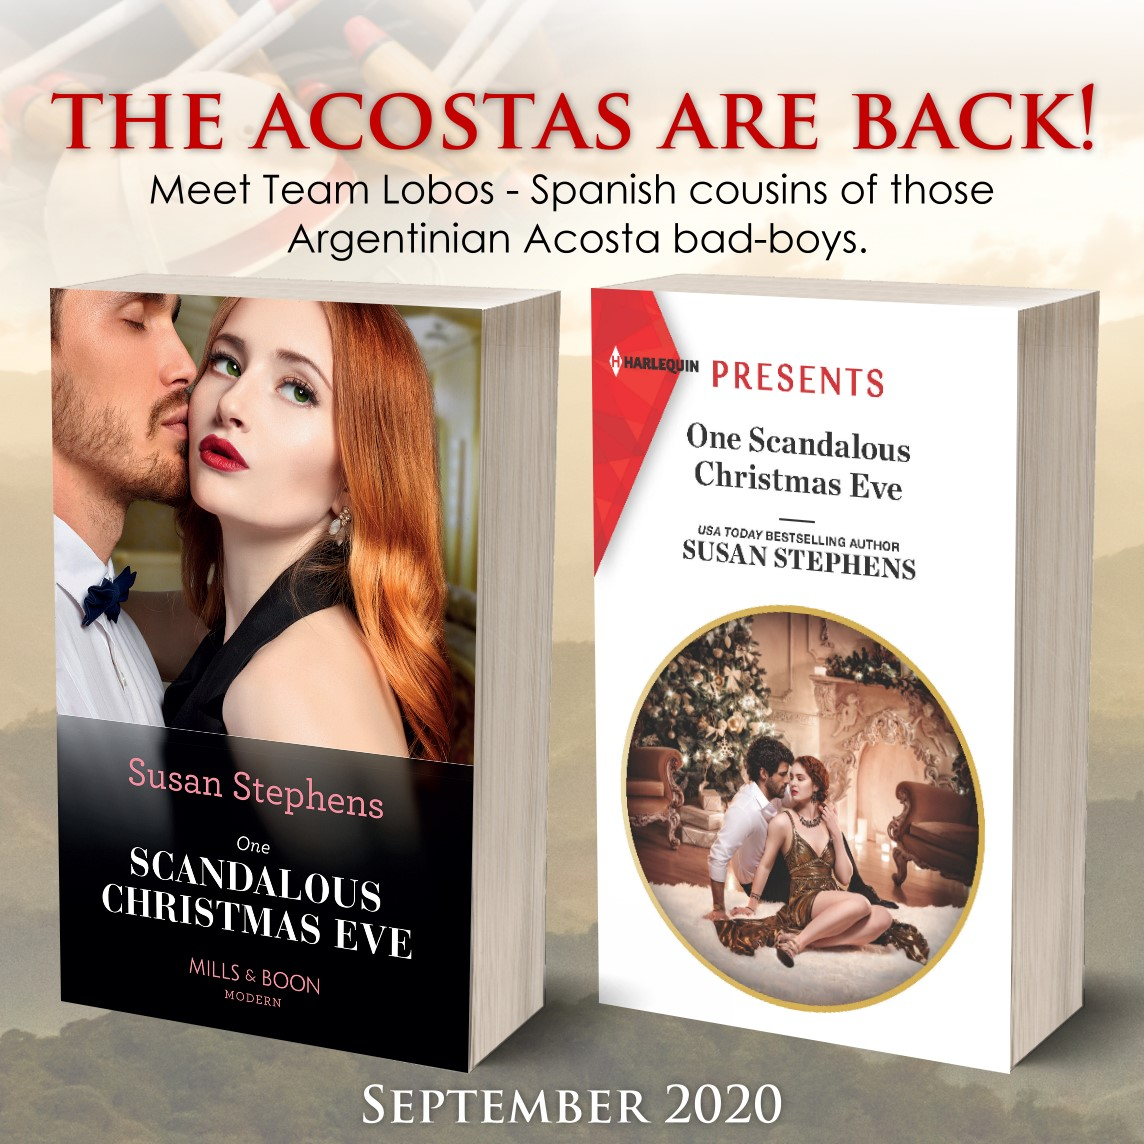 susan stephens' the acostas are back!